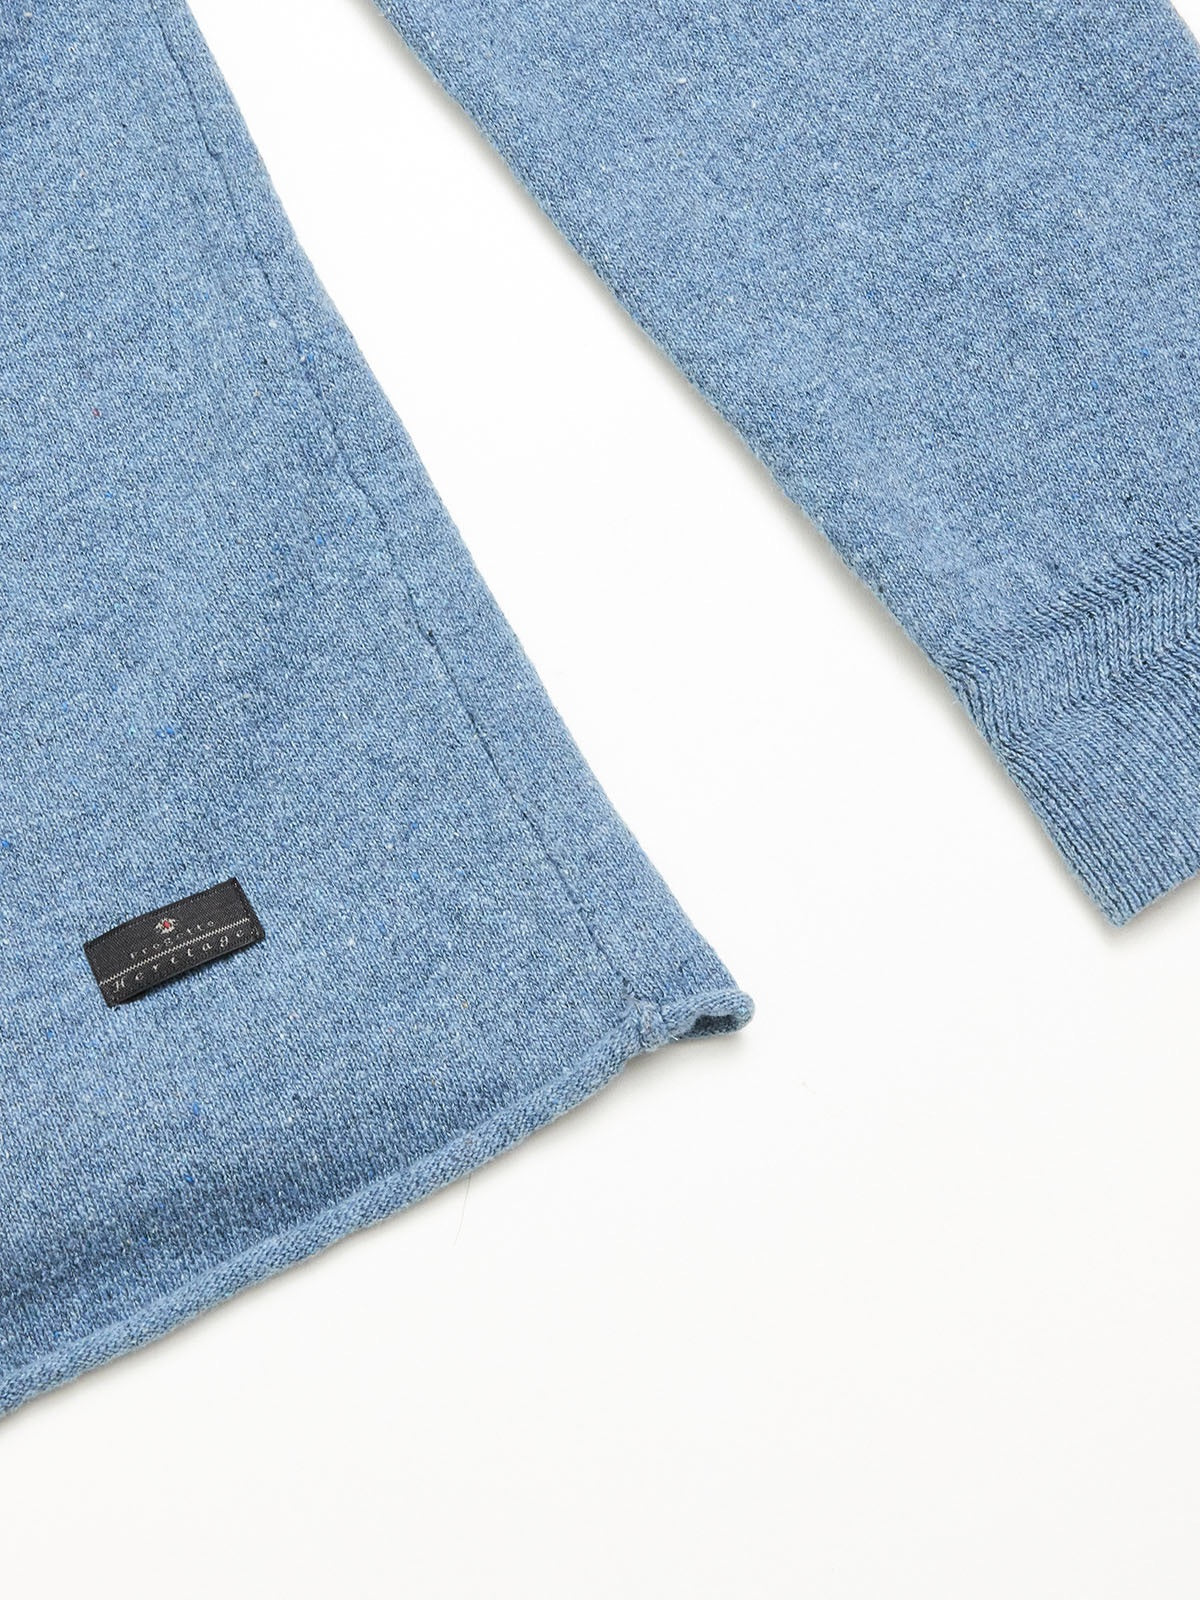 Blue de Genes San Pietro Denim Knit - LAST ONE!!